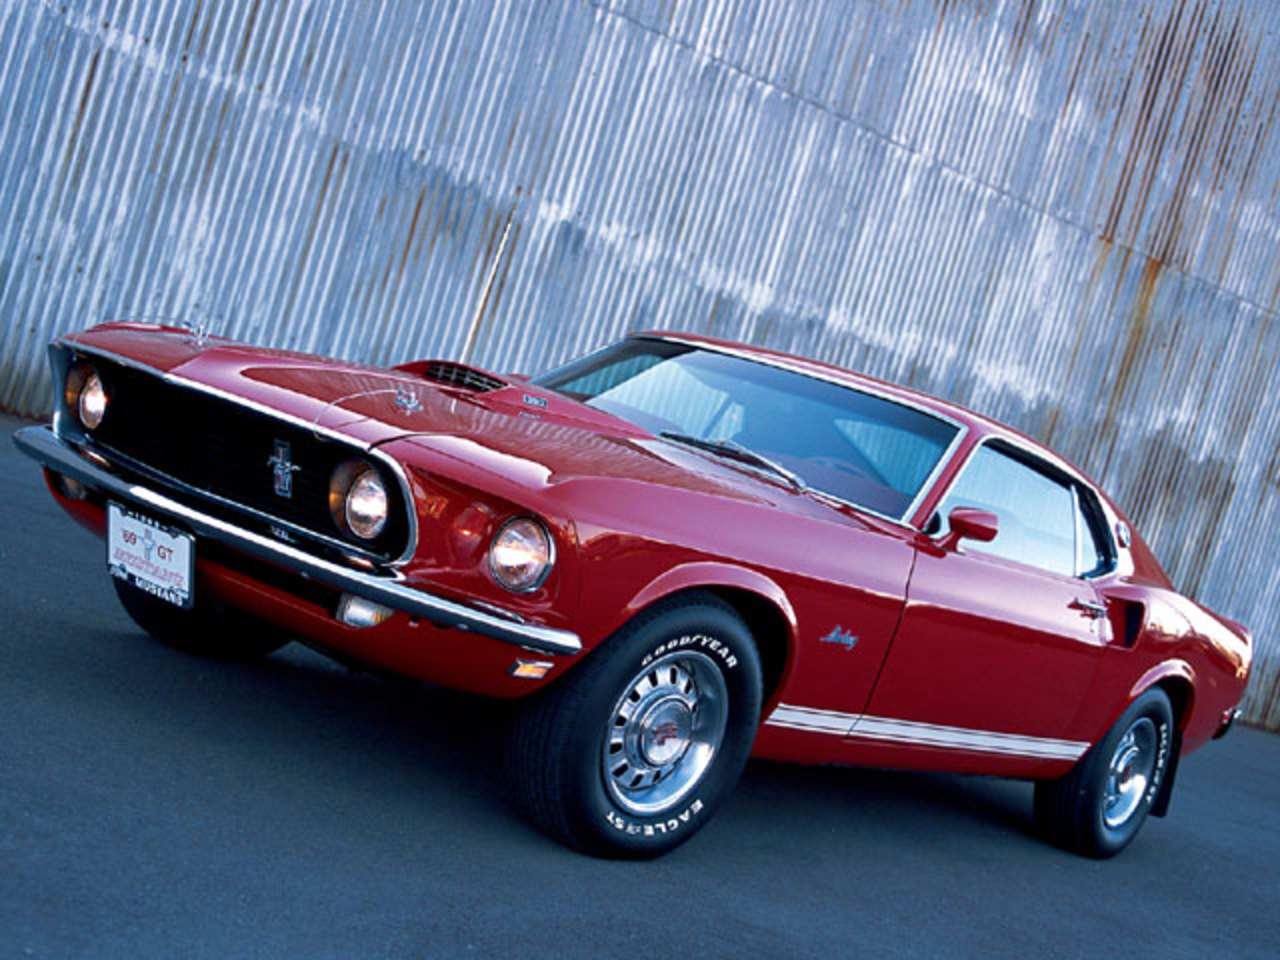 Ford Mustang GT 390 Fastback - cars catalog, specs, features, photos,